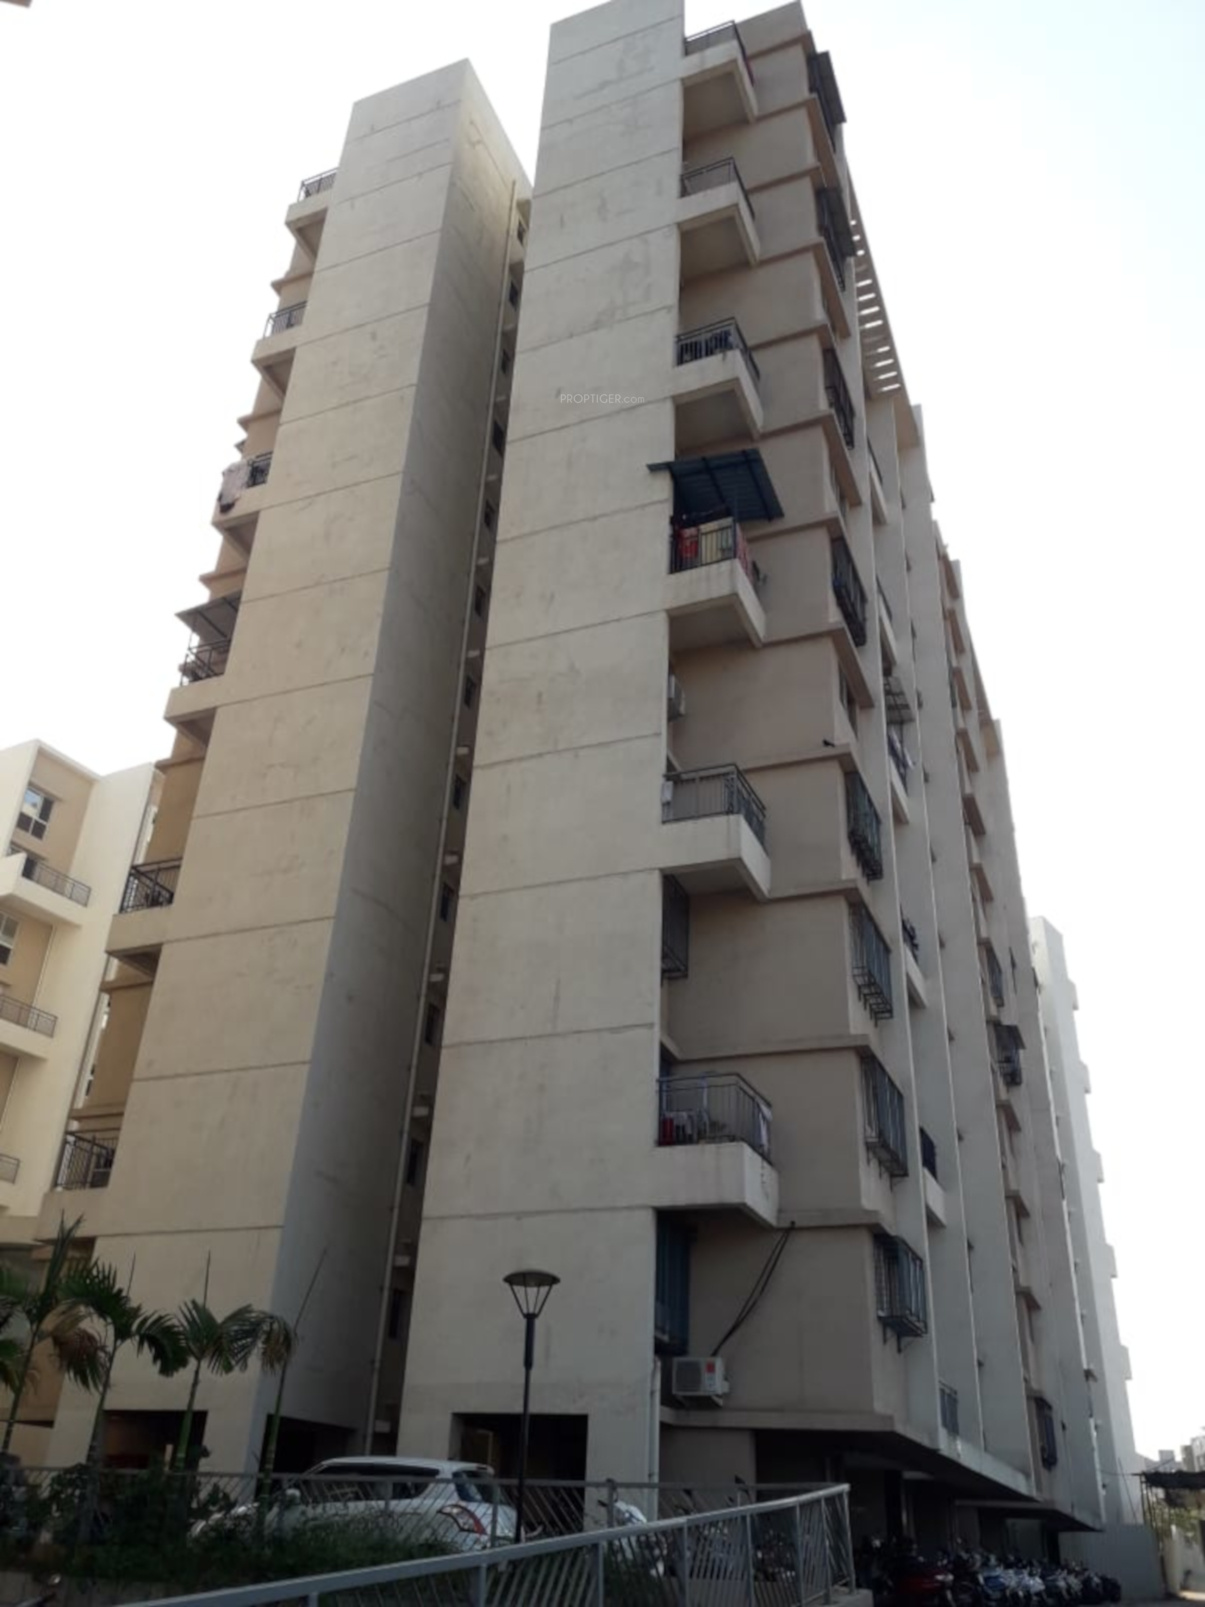 408 sq ft 2 BHK 2T Apartment for Sale in Patel RPL Patels